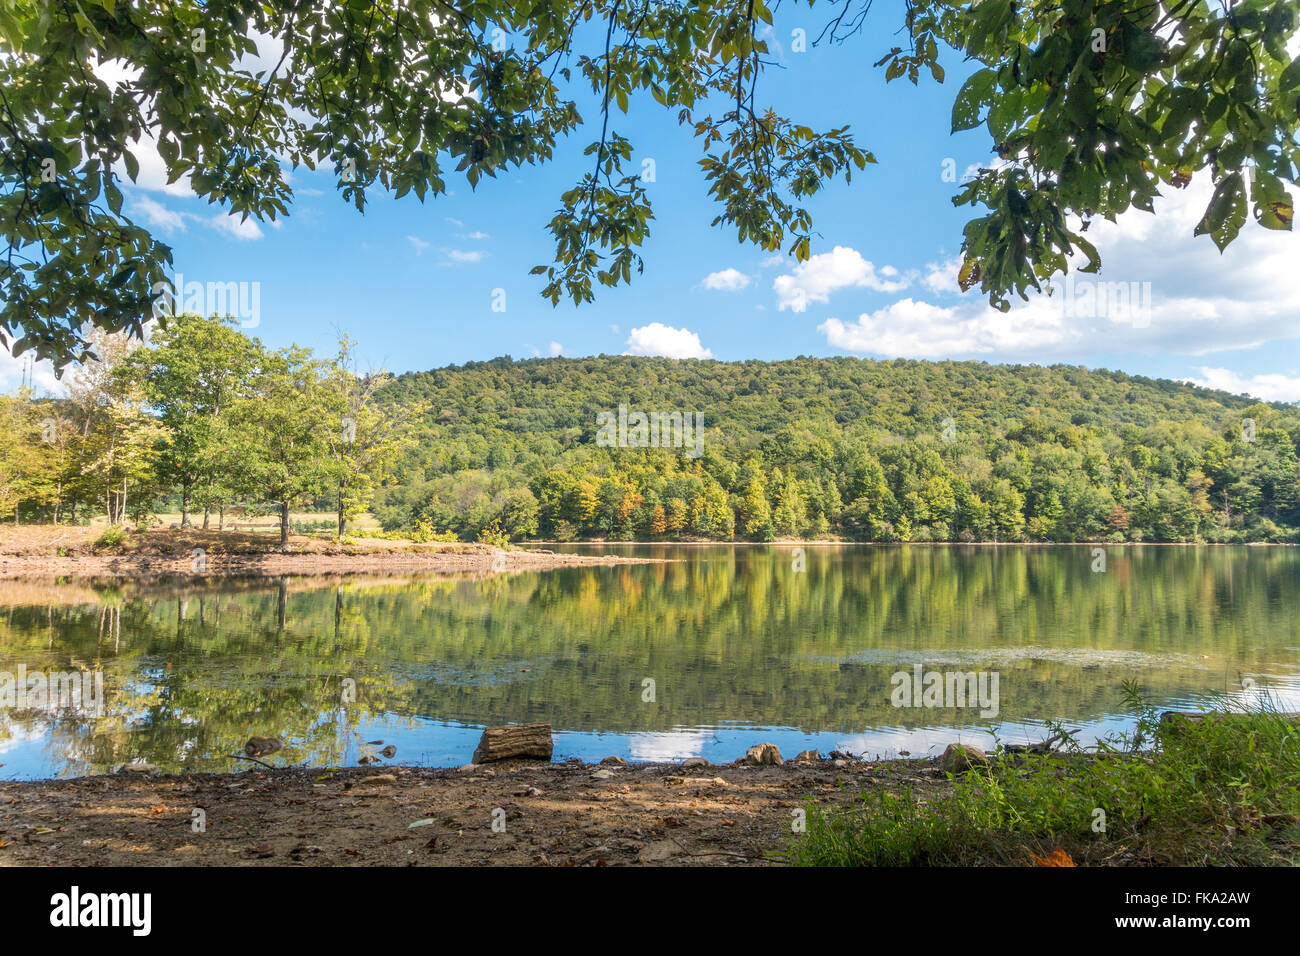 https://c7.alamy.com/comp/FKA2AW/lake-habeeb-in-rocky-gap-state-park-near-cumberland-maryland-totally-FKA2AW.jpg